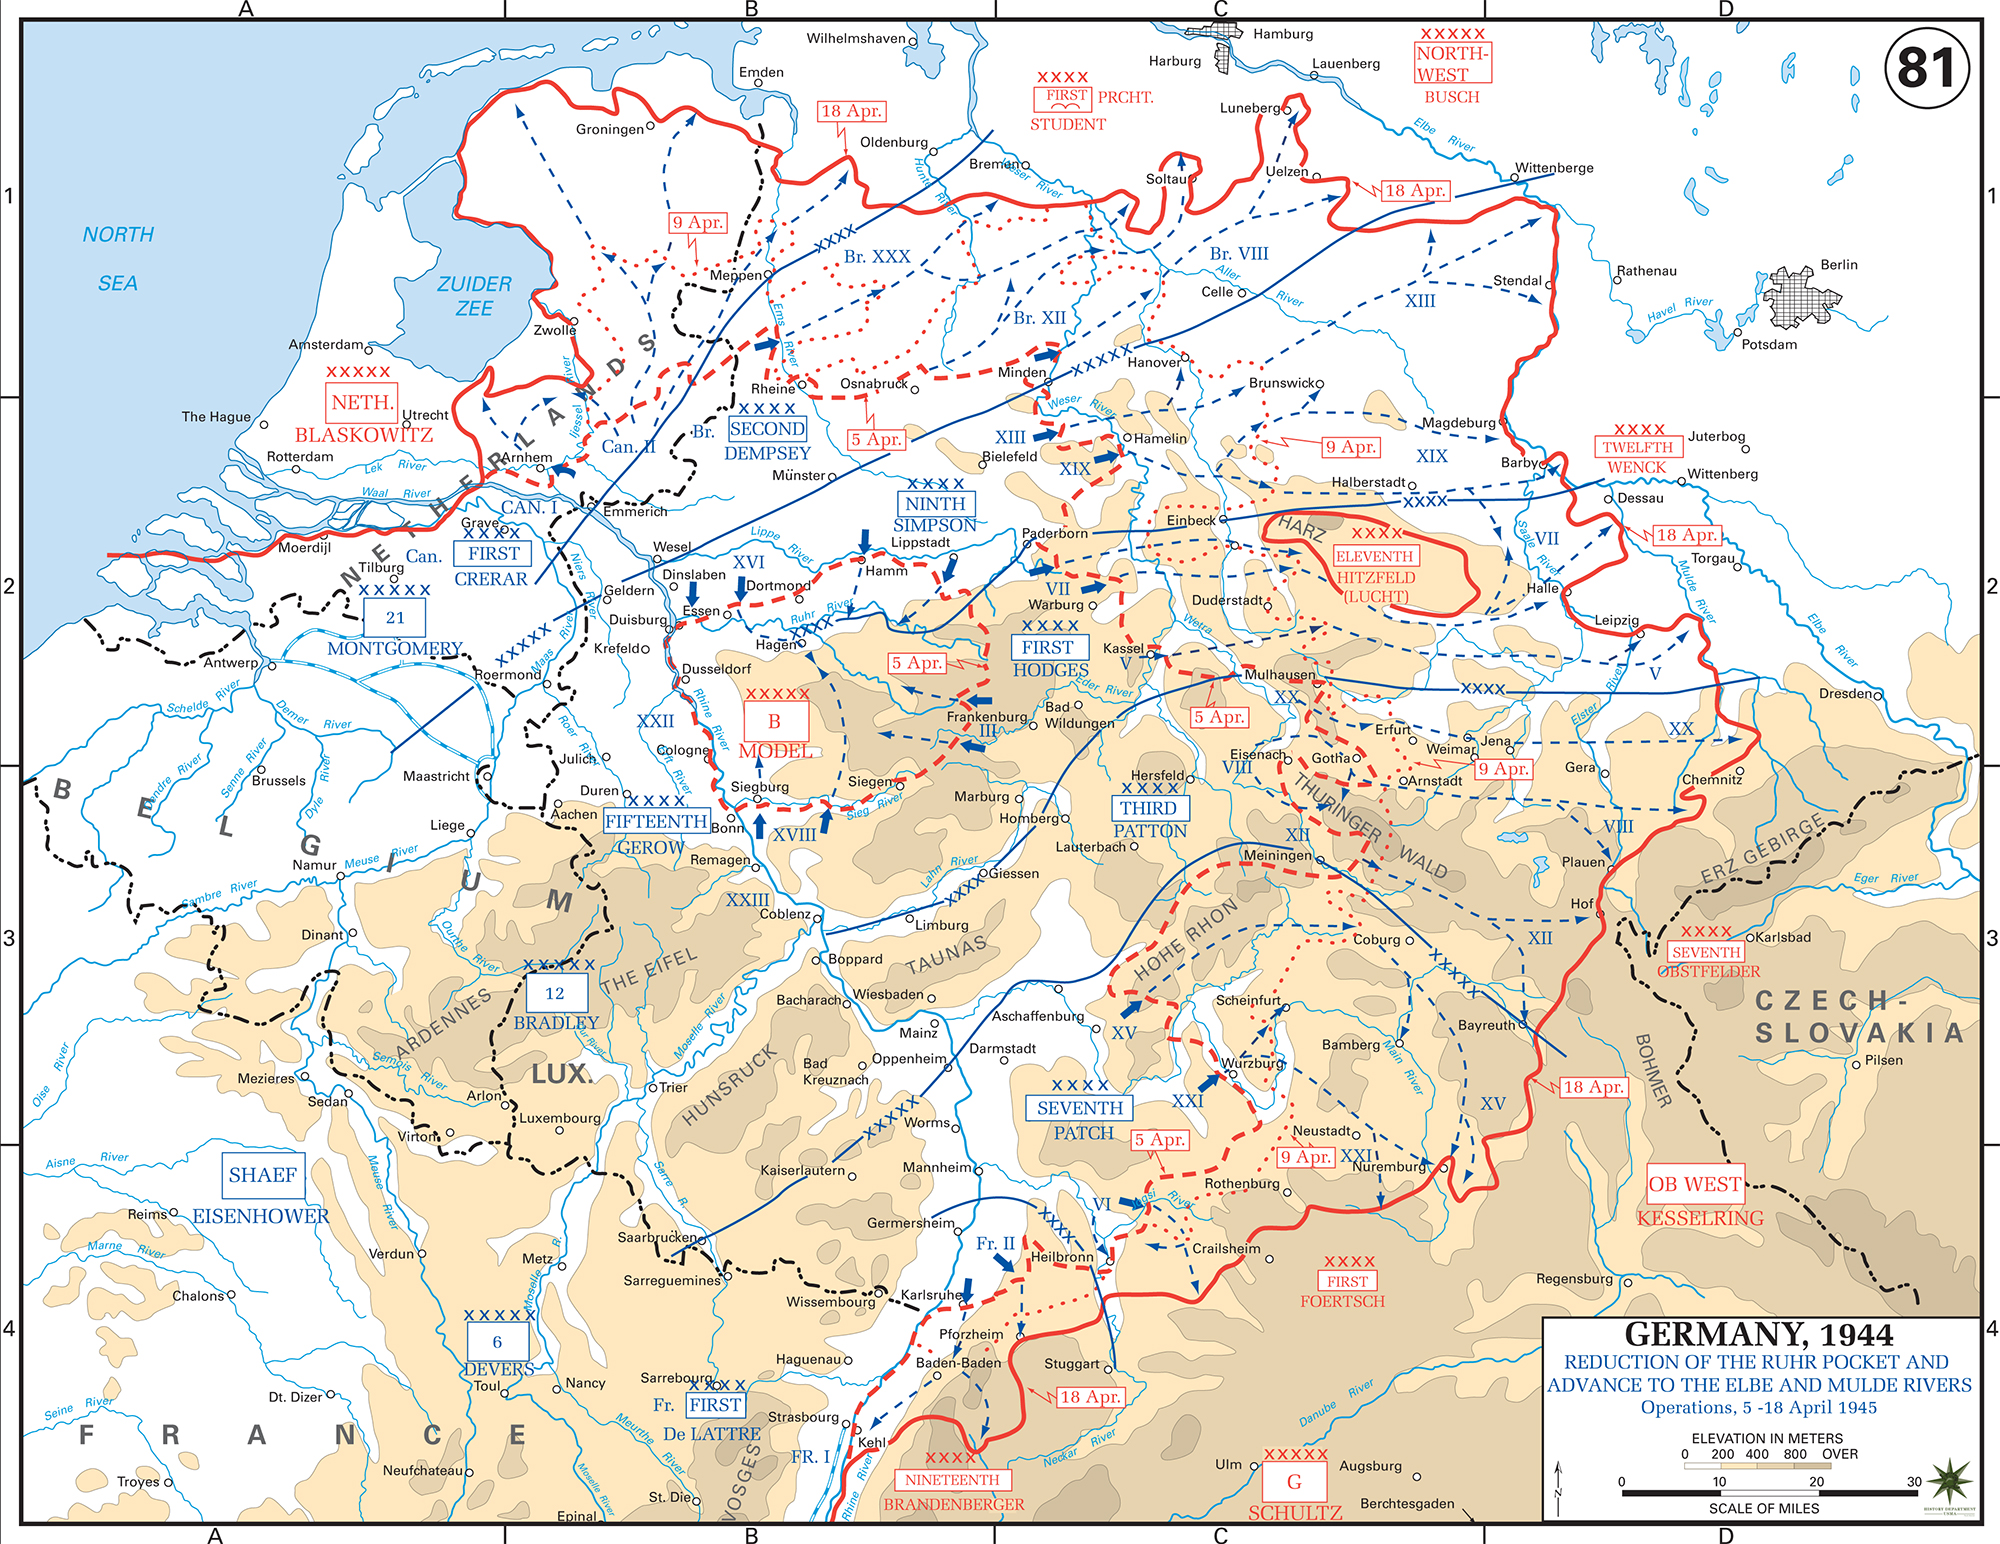 Map of World War II: Germany. Reduction of the Ruhr Pocket and Advance to the Elbe and Mulde Rivers. Operations April 5-18, 1945